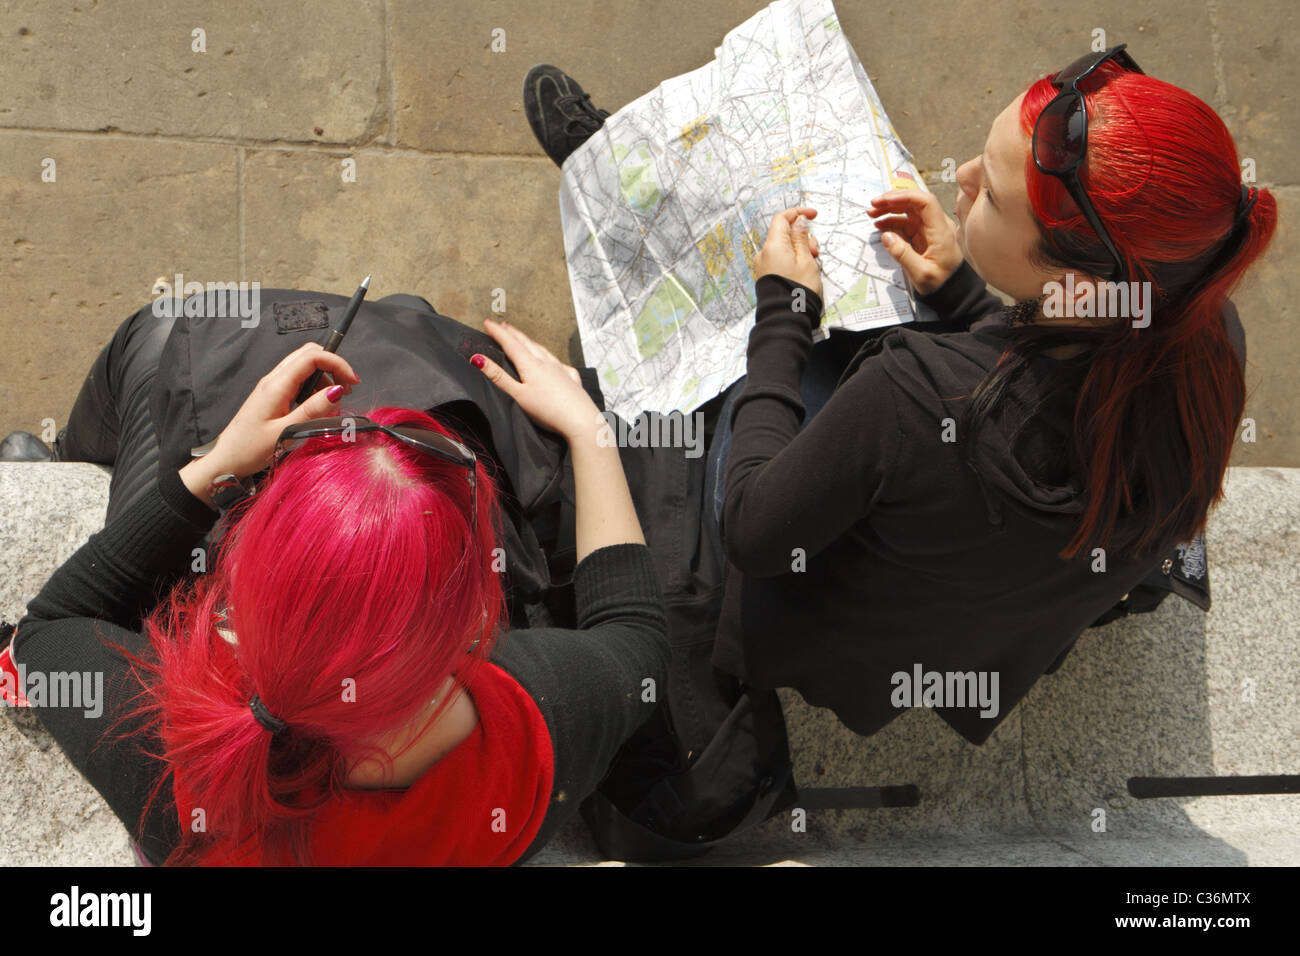 Two young female tourists with dyed red hair consulting a map, London, UK - Stock Image